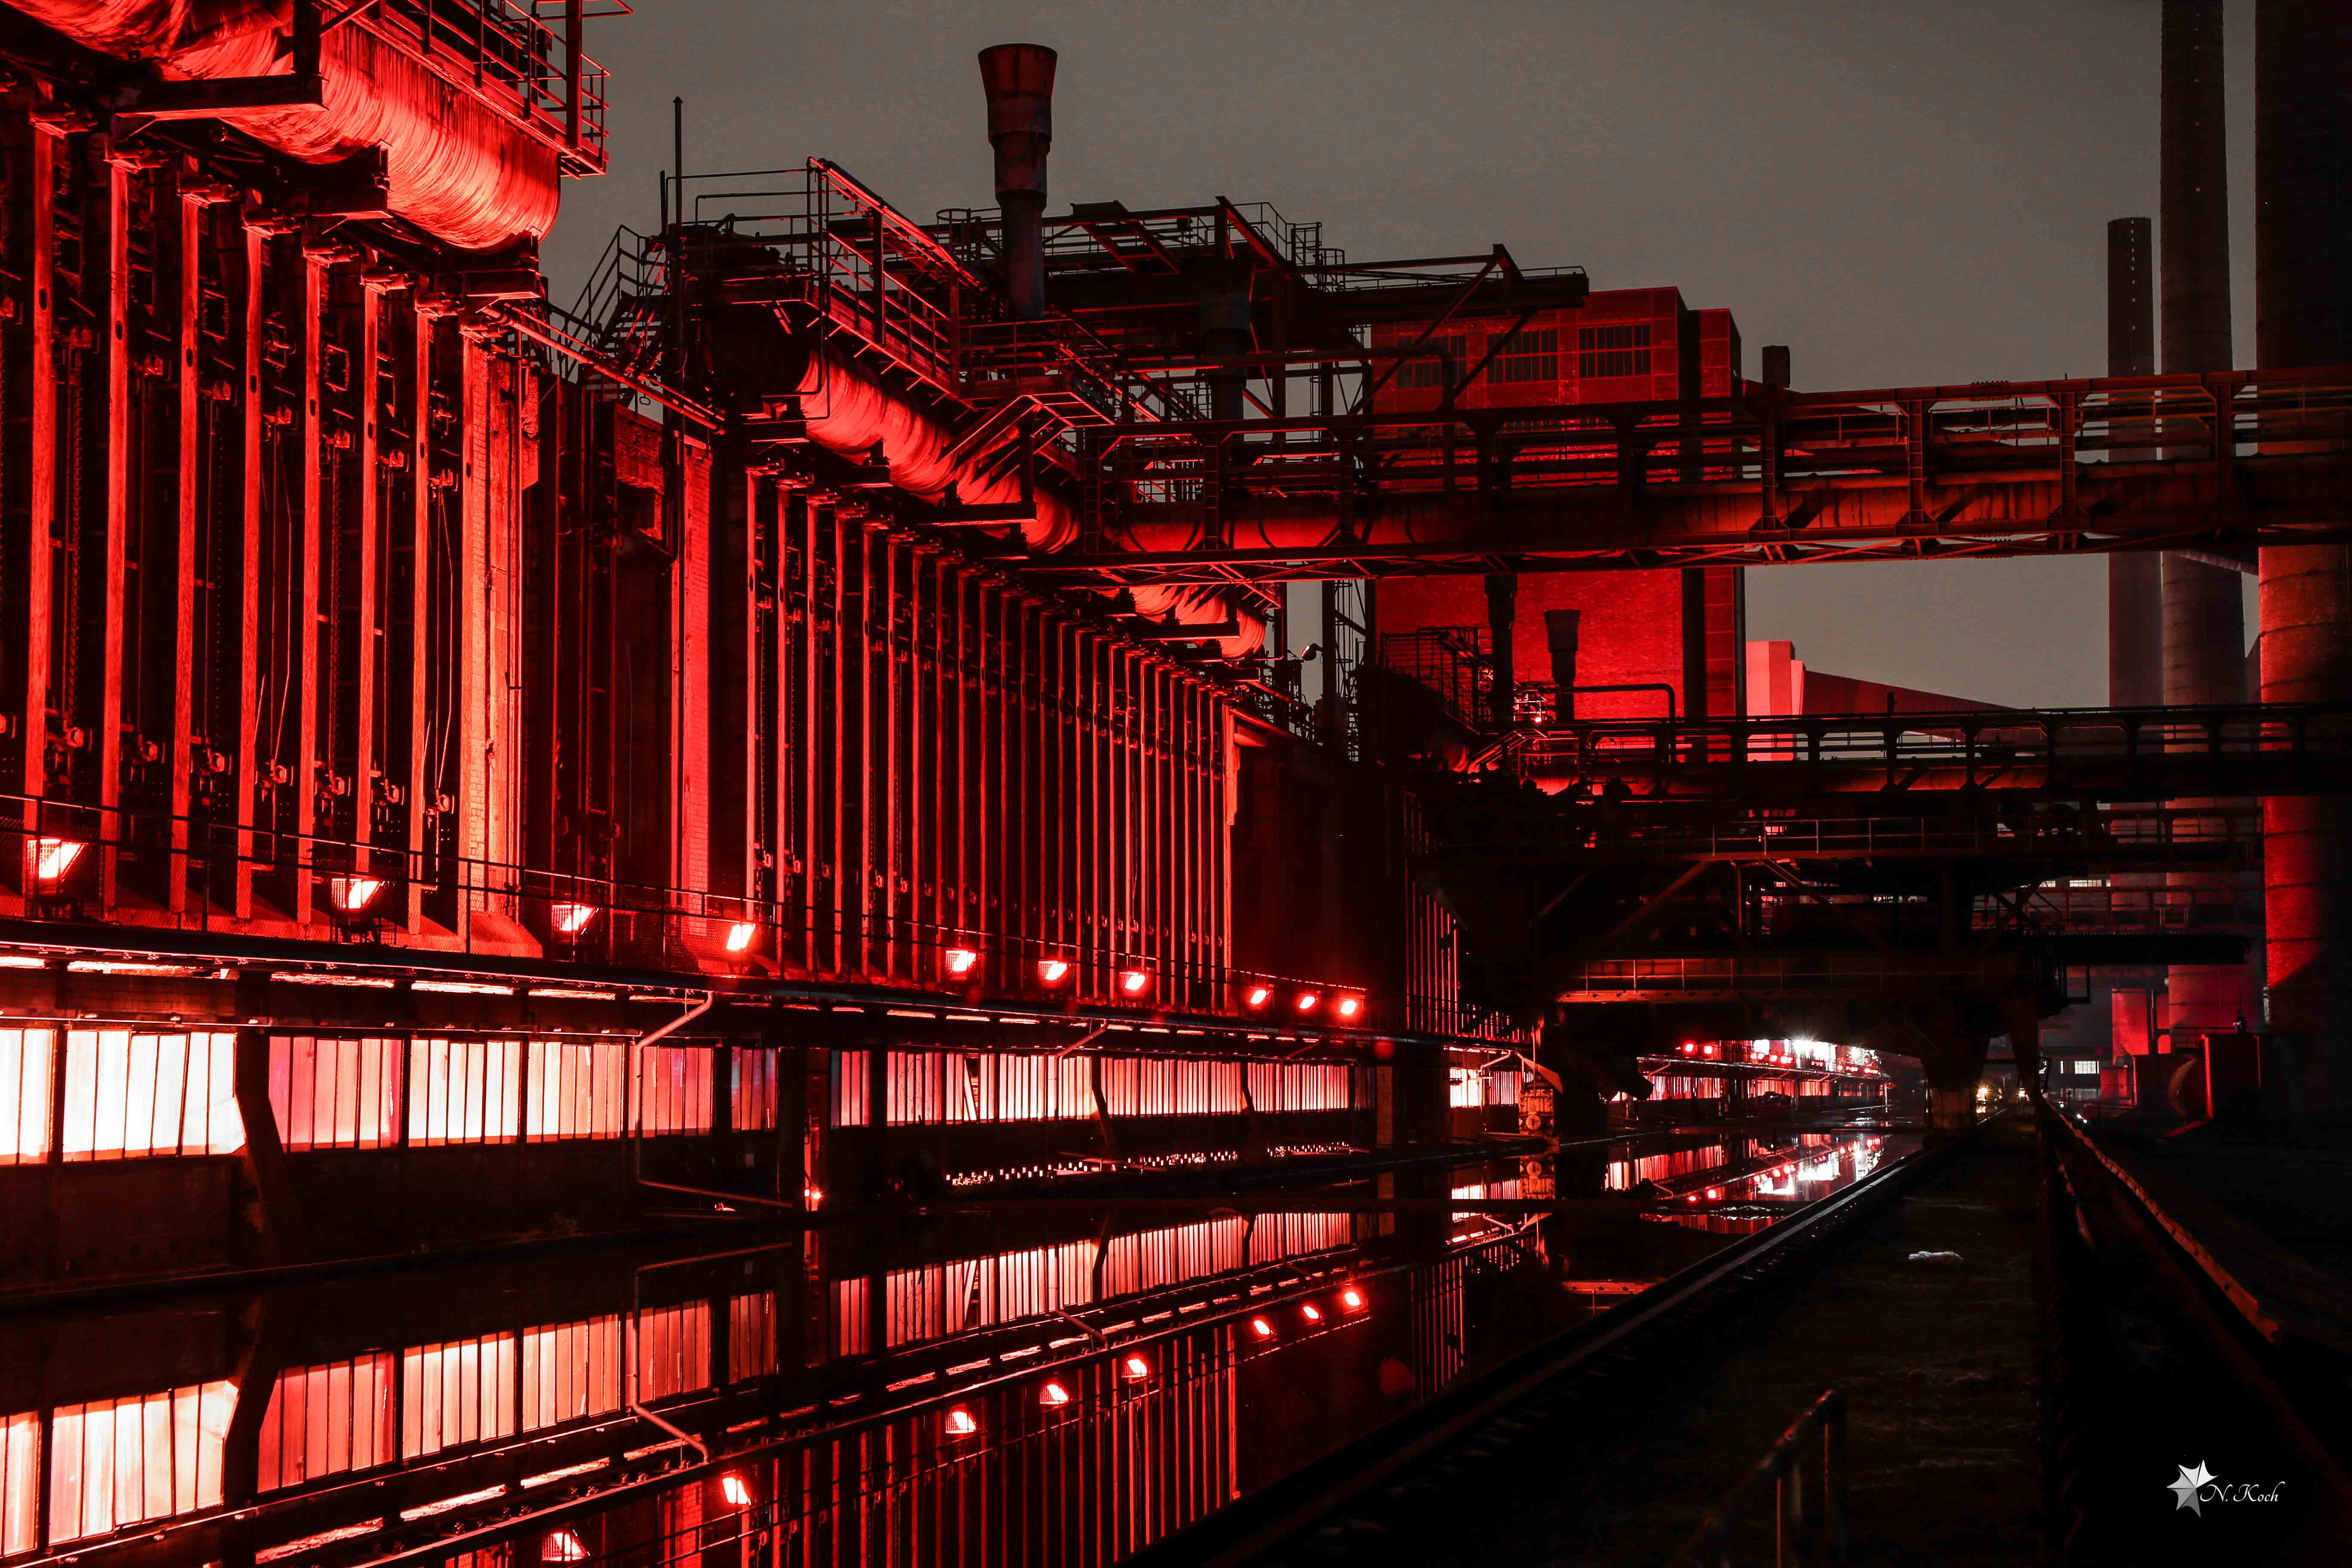 2015, Essen | Zeche Zollverein at night